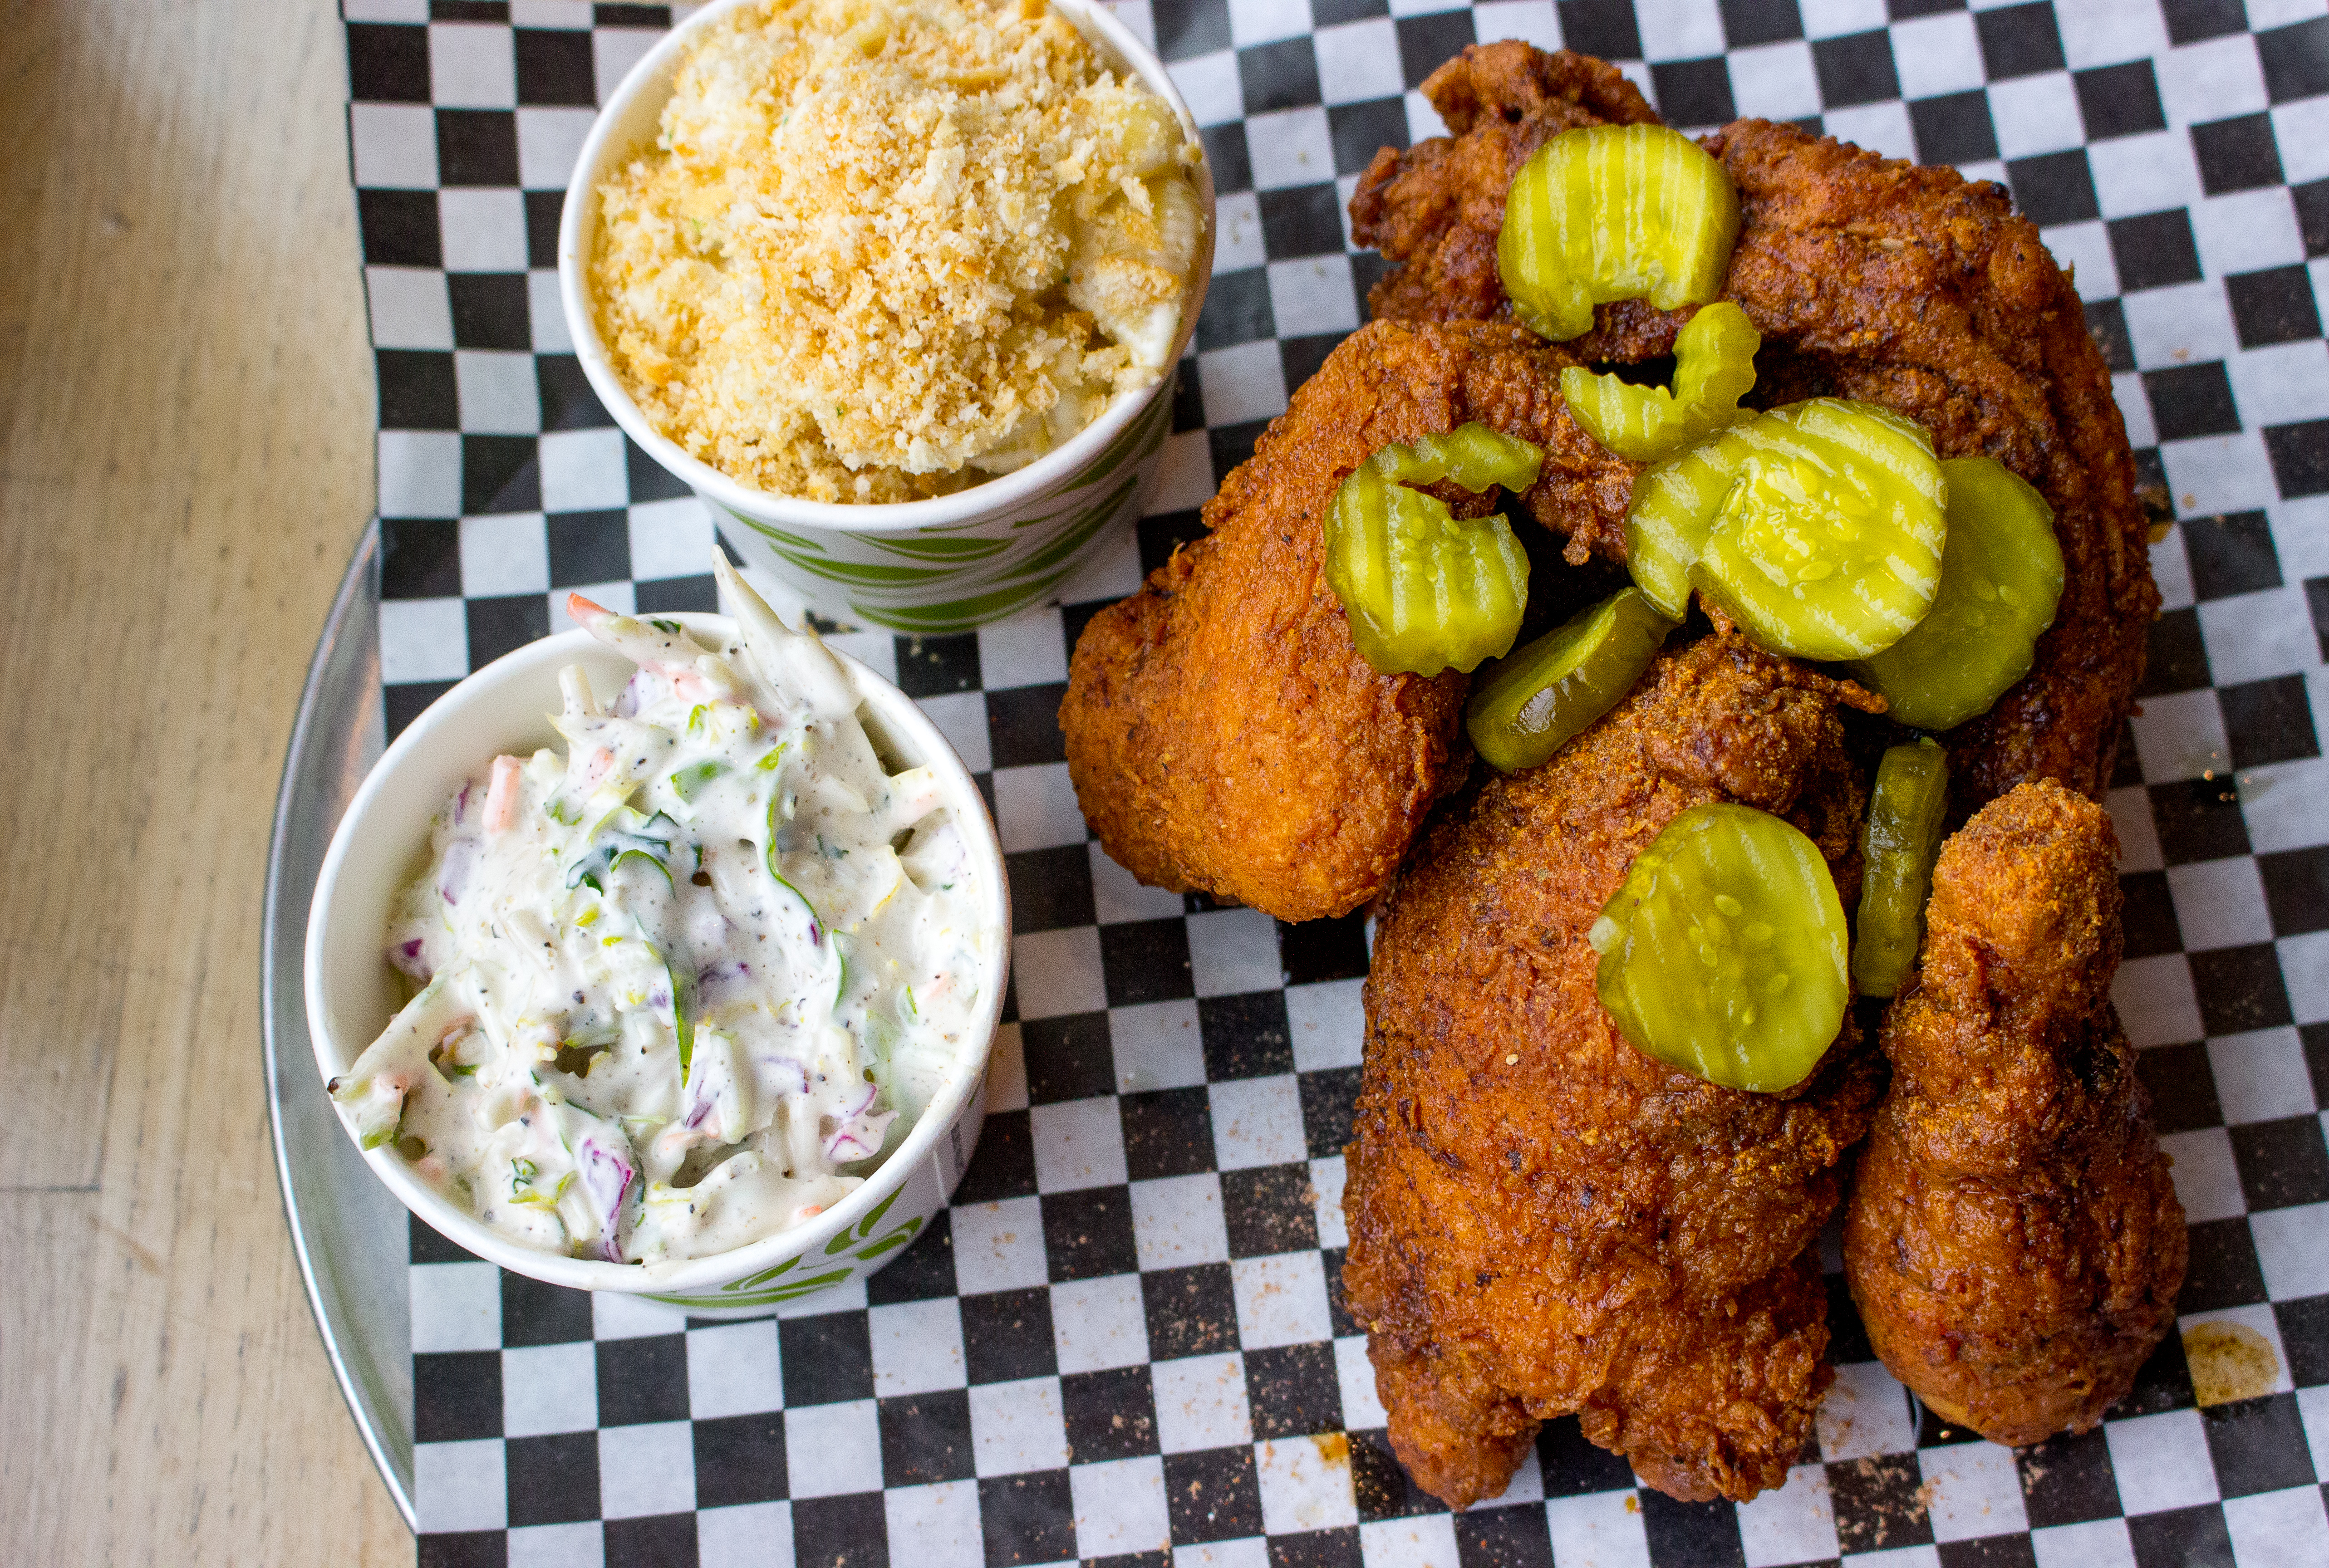 Fried chicken with pickles and two sides